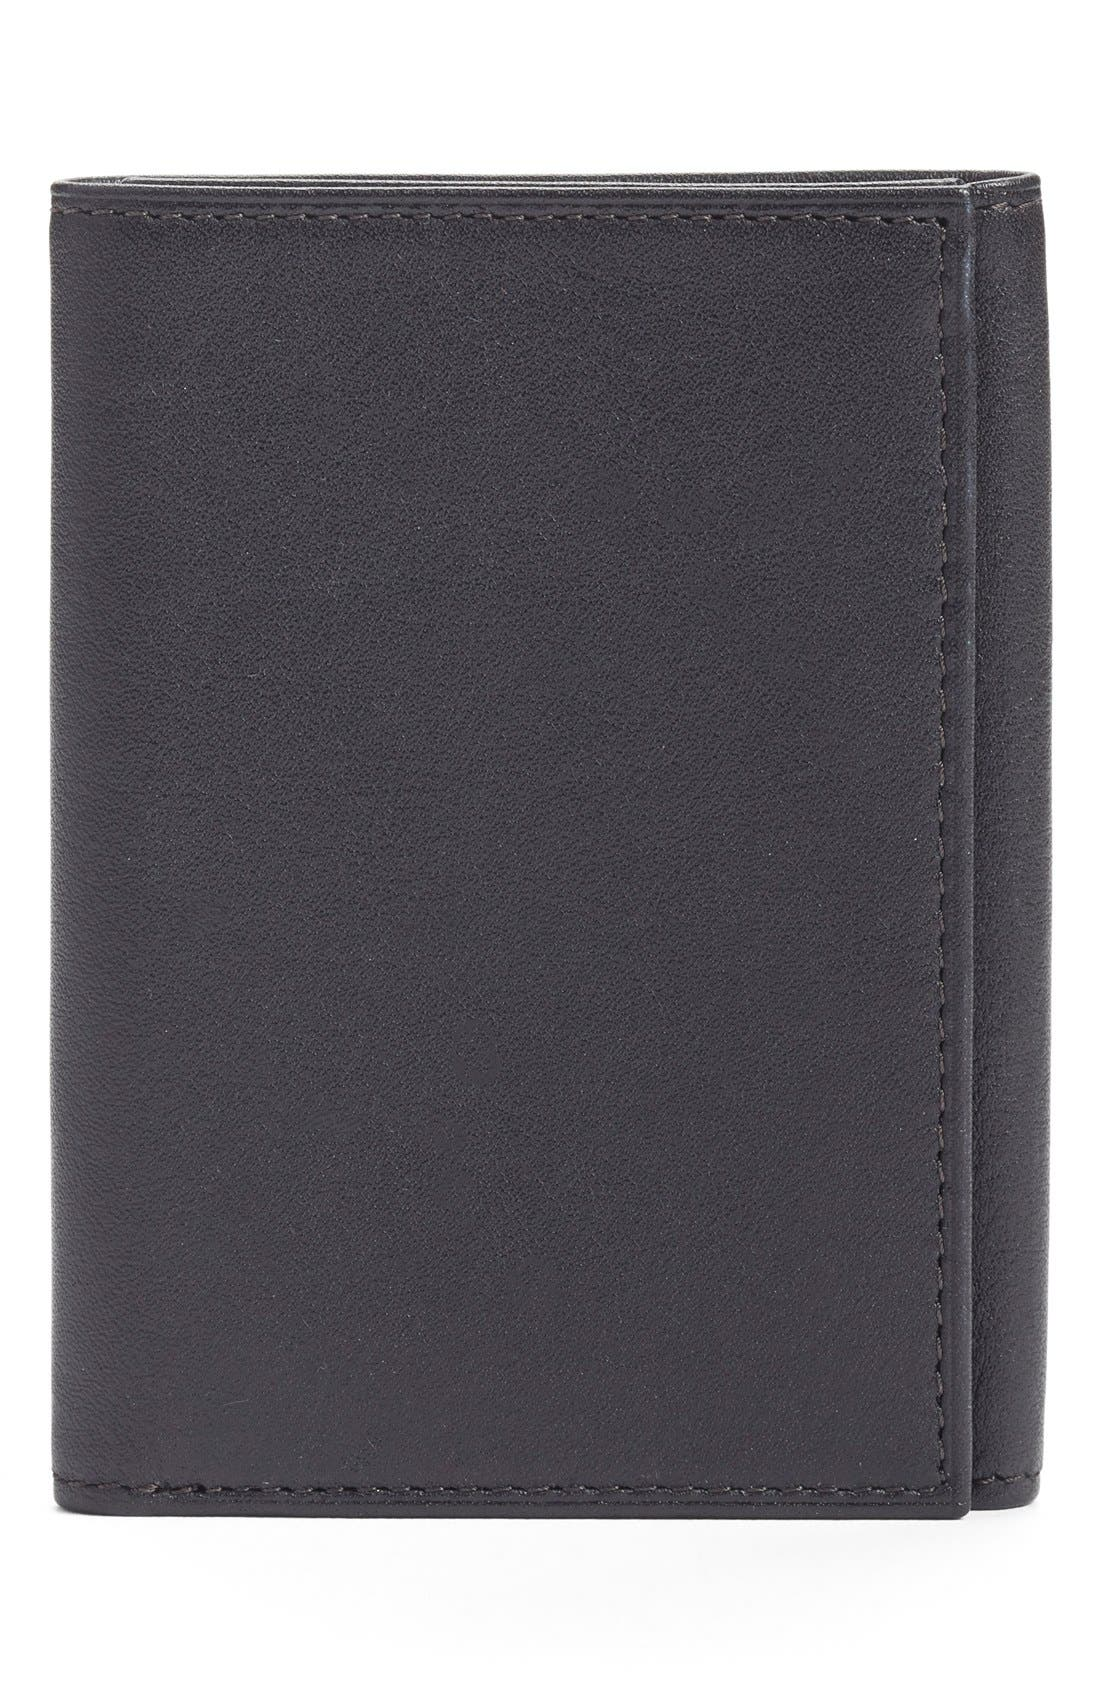 Leather Trifold Wallet,                             Main thumbnail 1, color,                             Black